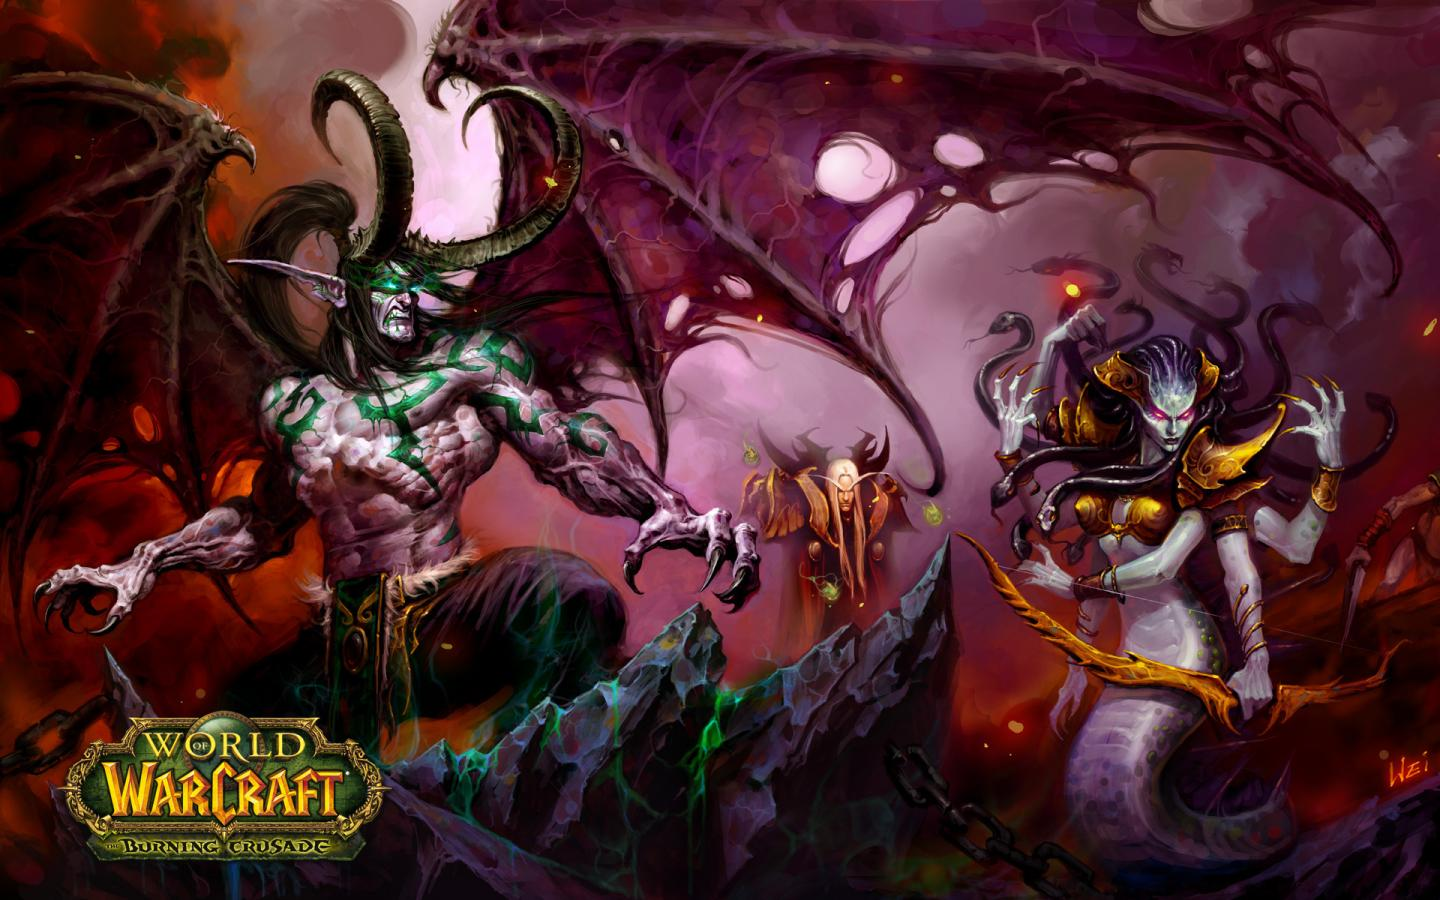 Игры, warcraft, world of warcraft, wow 1440x900